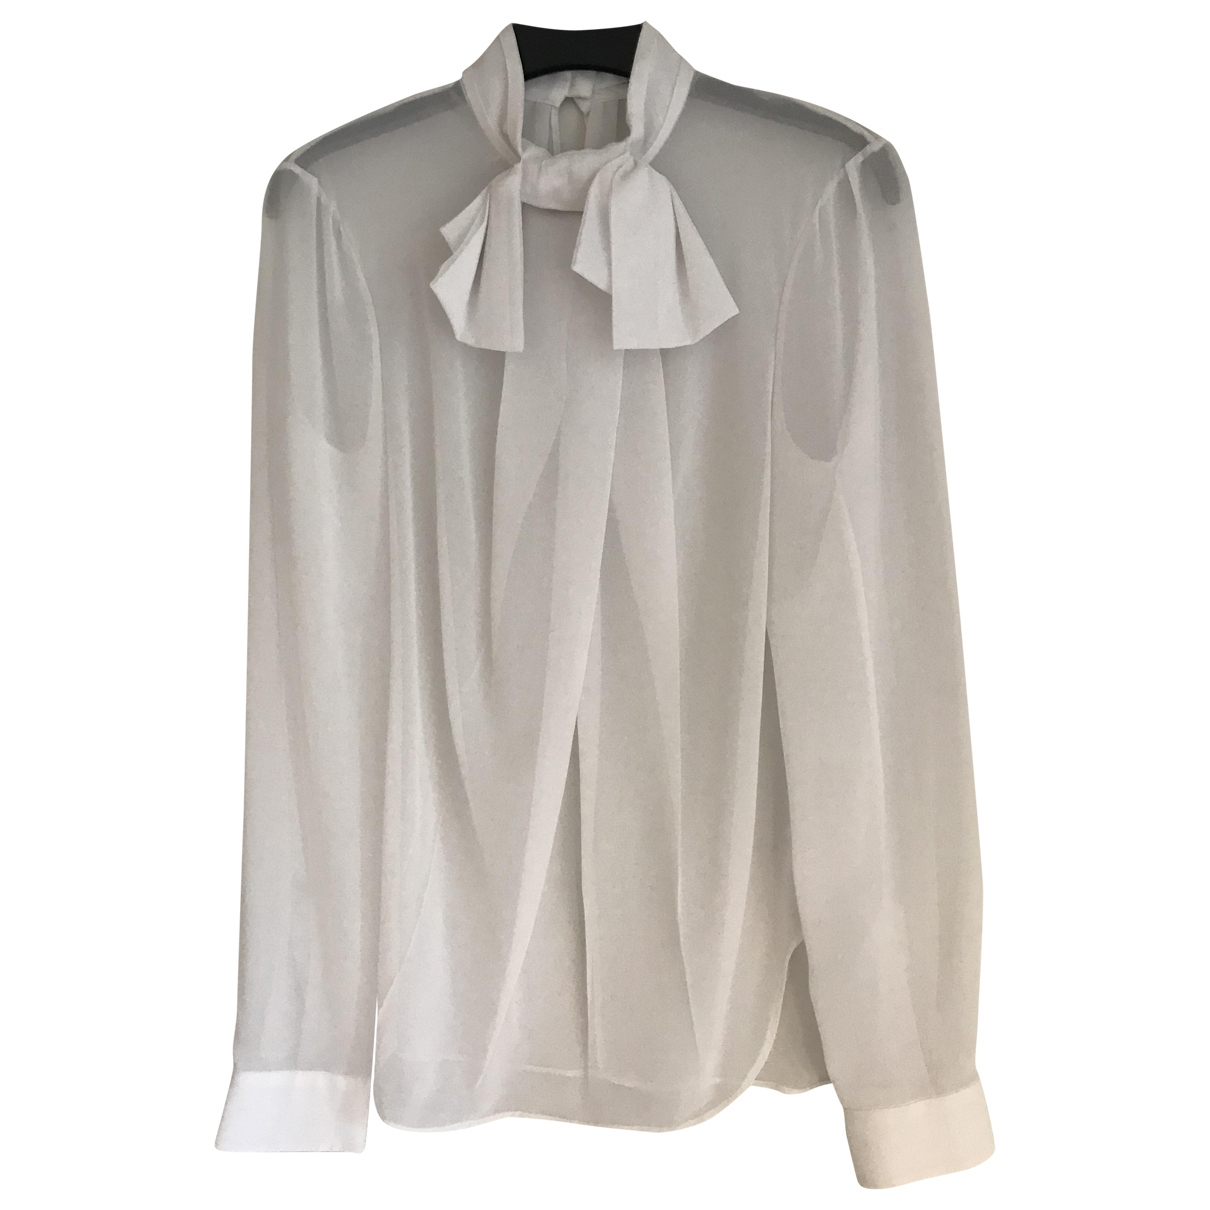 Carven \N White  top for Women 36 FR